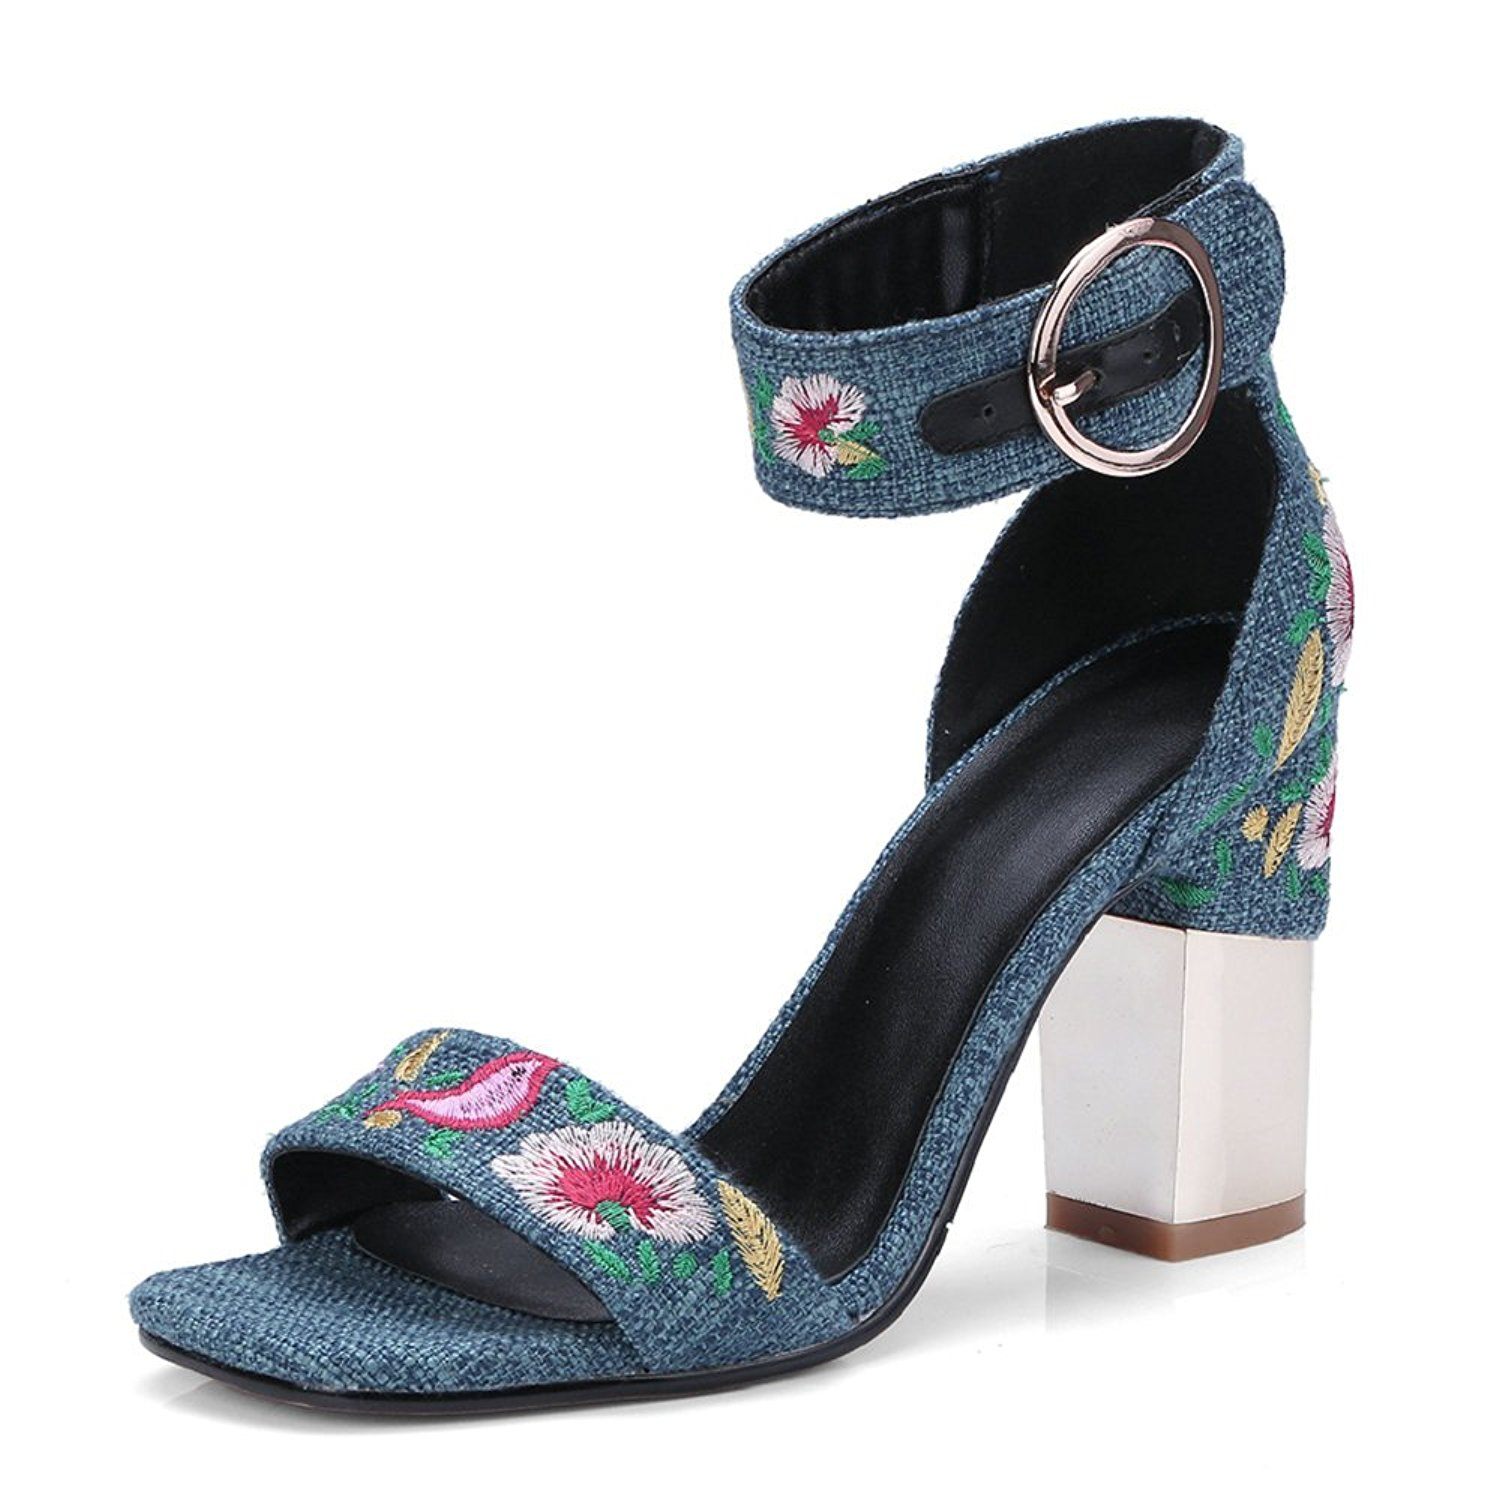 b5785afbf50 Buy AnMengXinLing Womens Heeled Sandals Ankle Straps Suede Gladiator ...